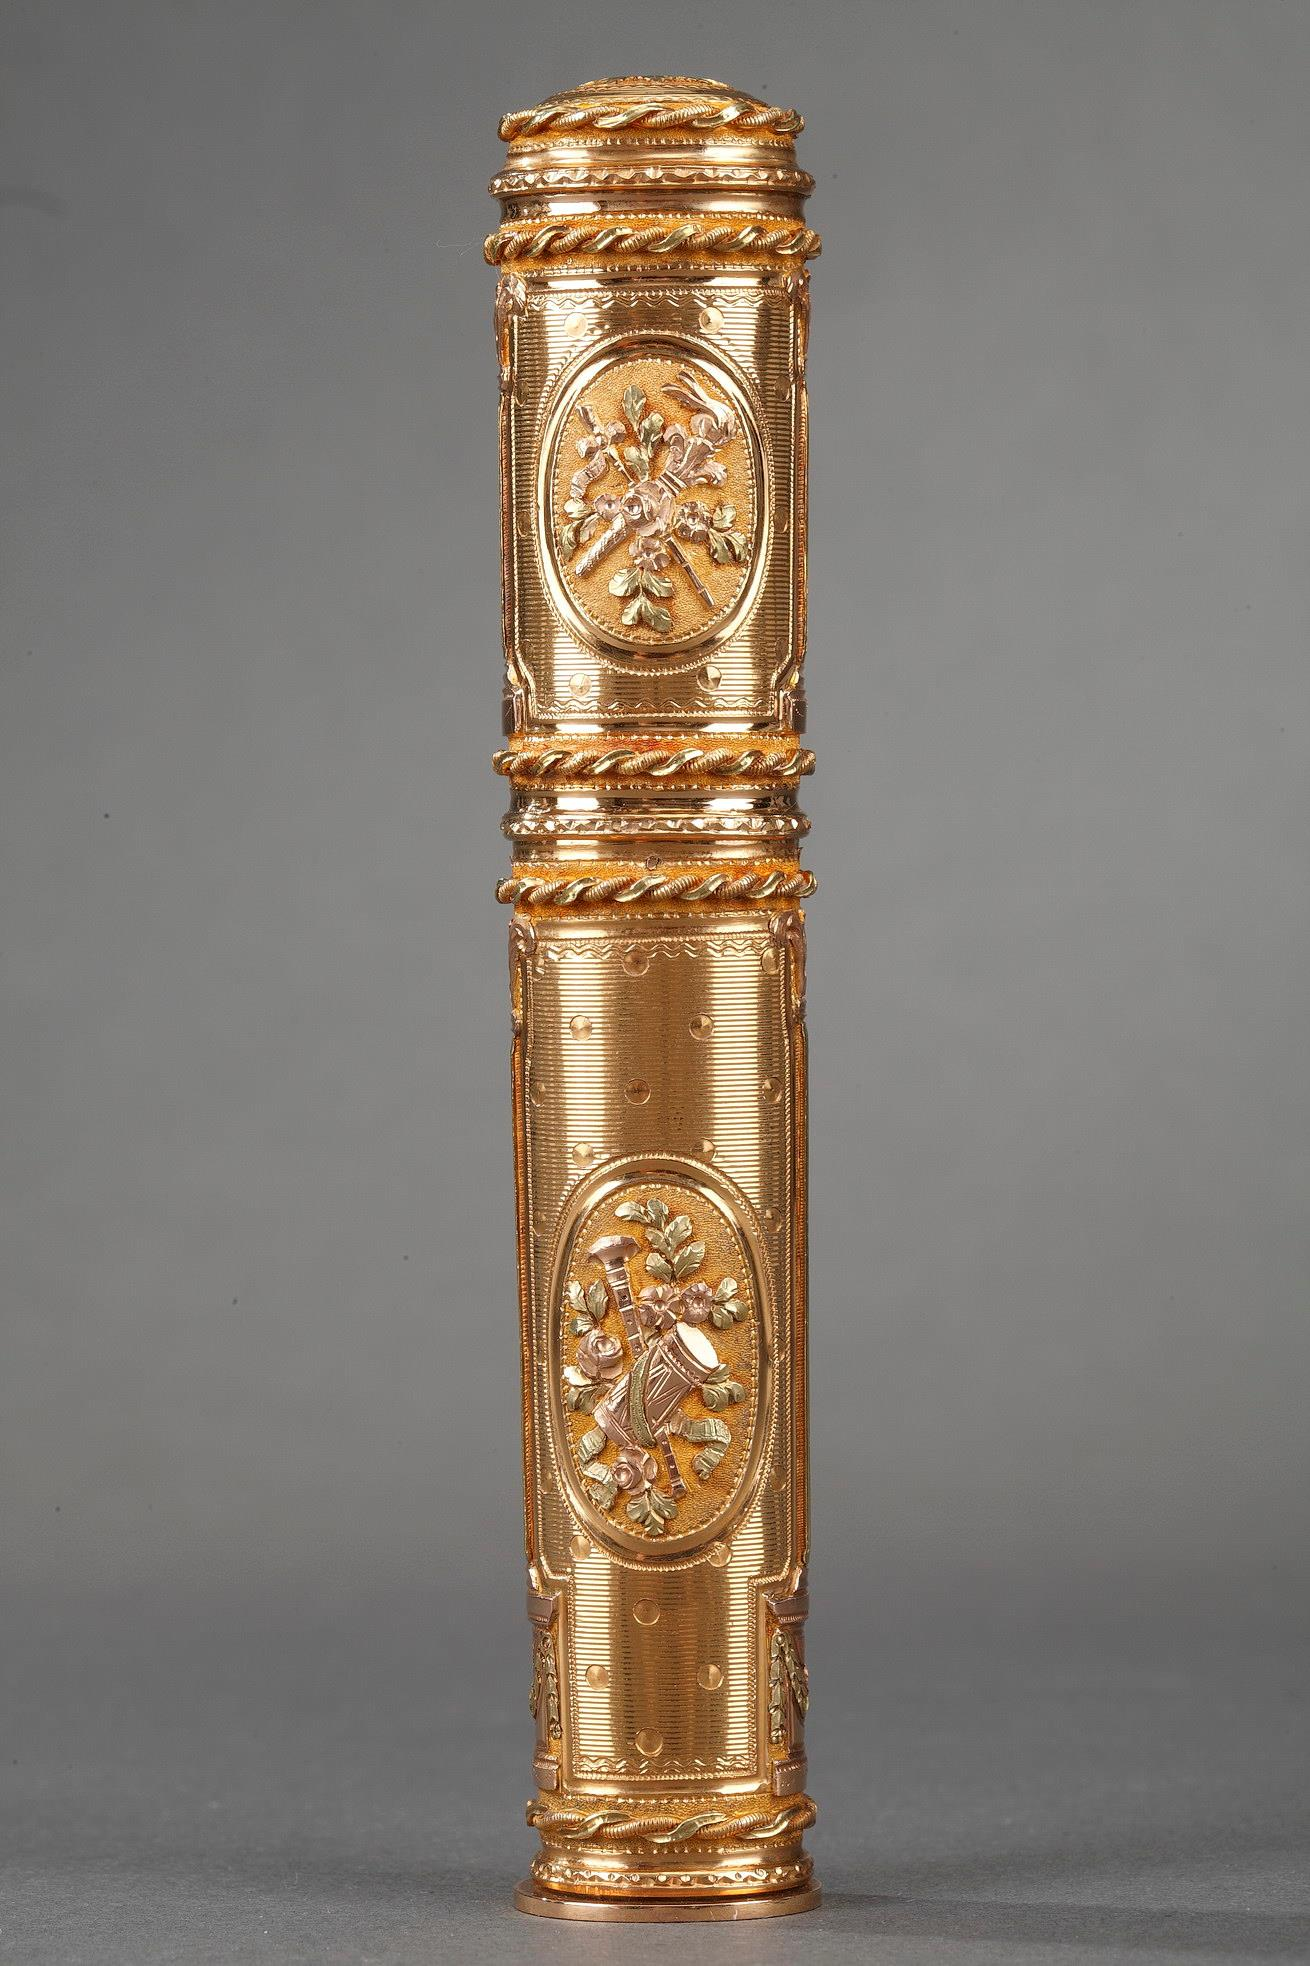 GOLD CASE FOR WAX.<br>LOUIS XVI PERIOD.